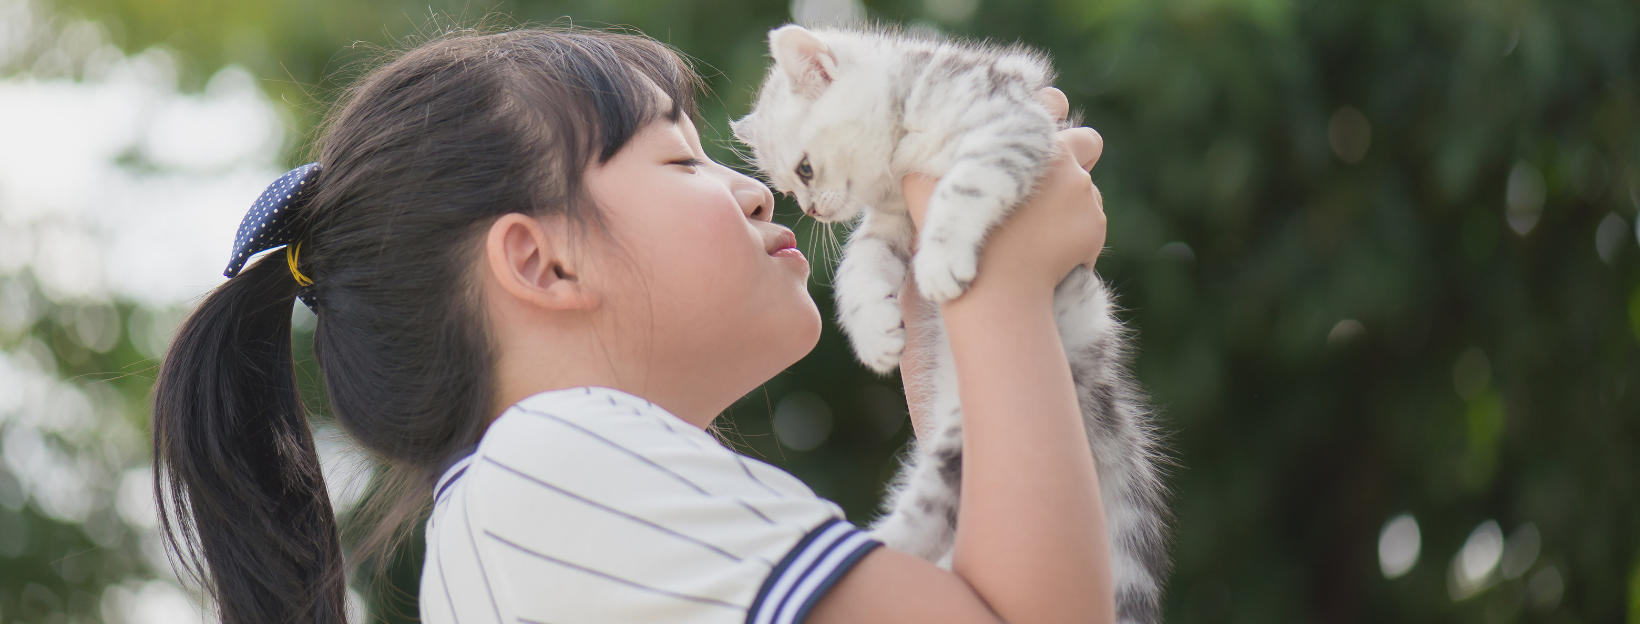 5 Easy Ways to Ensure Your Newly Adopted Kitten Gets Closer to You